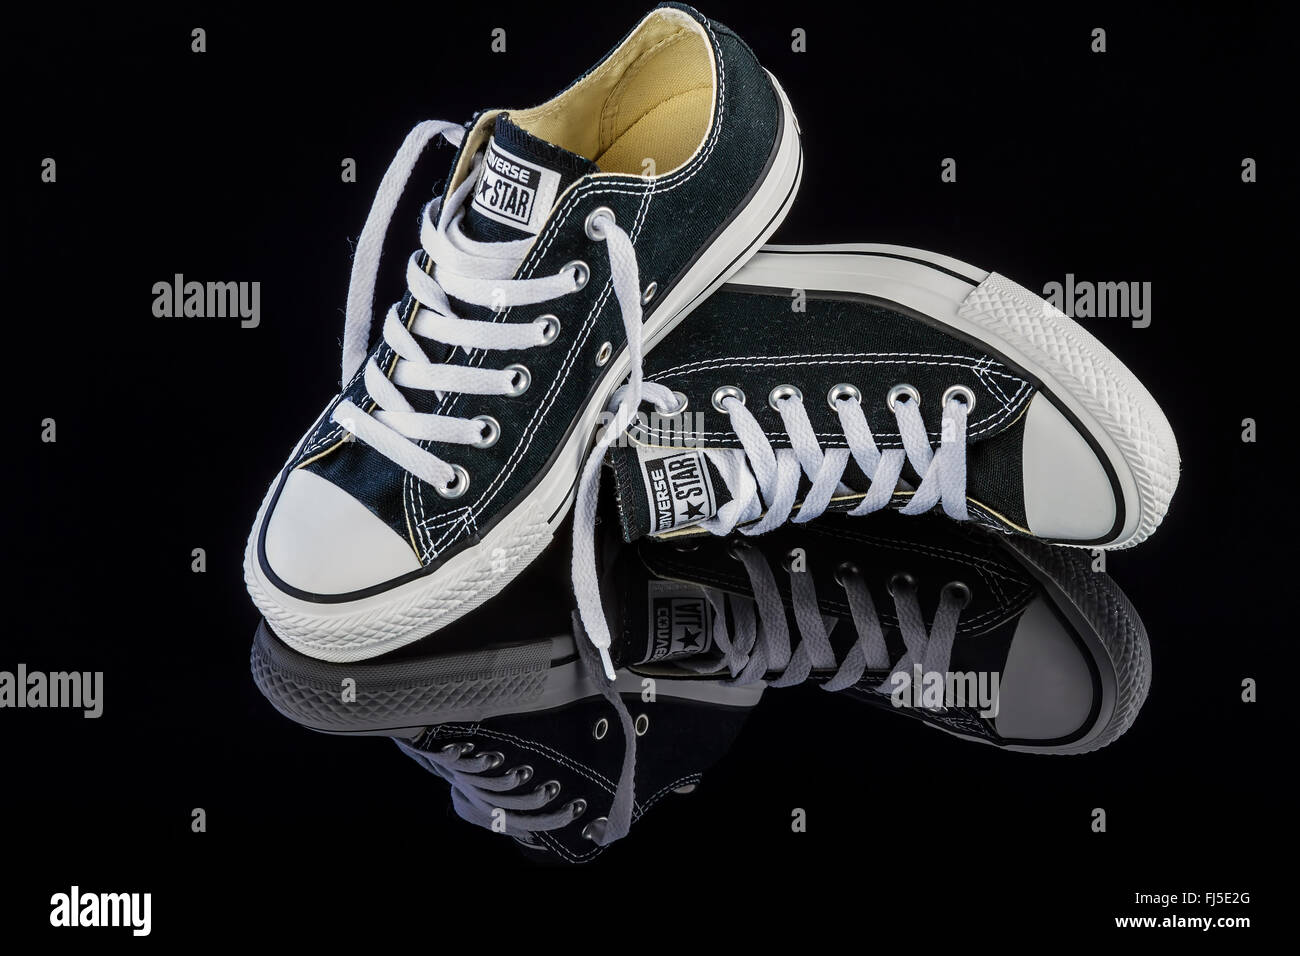 63dc33bb4e5c Converse Shoes Stock Photos   Converse Shoes Stock Images - Alamy